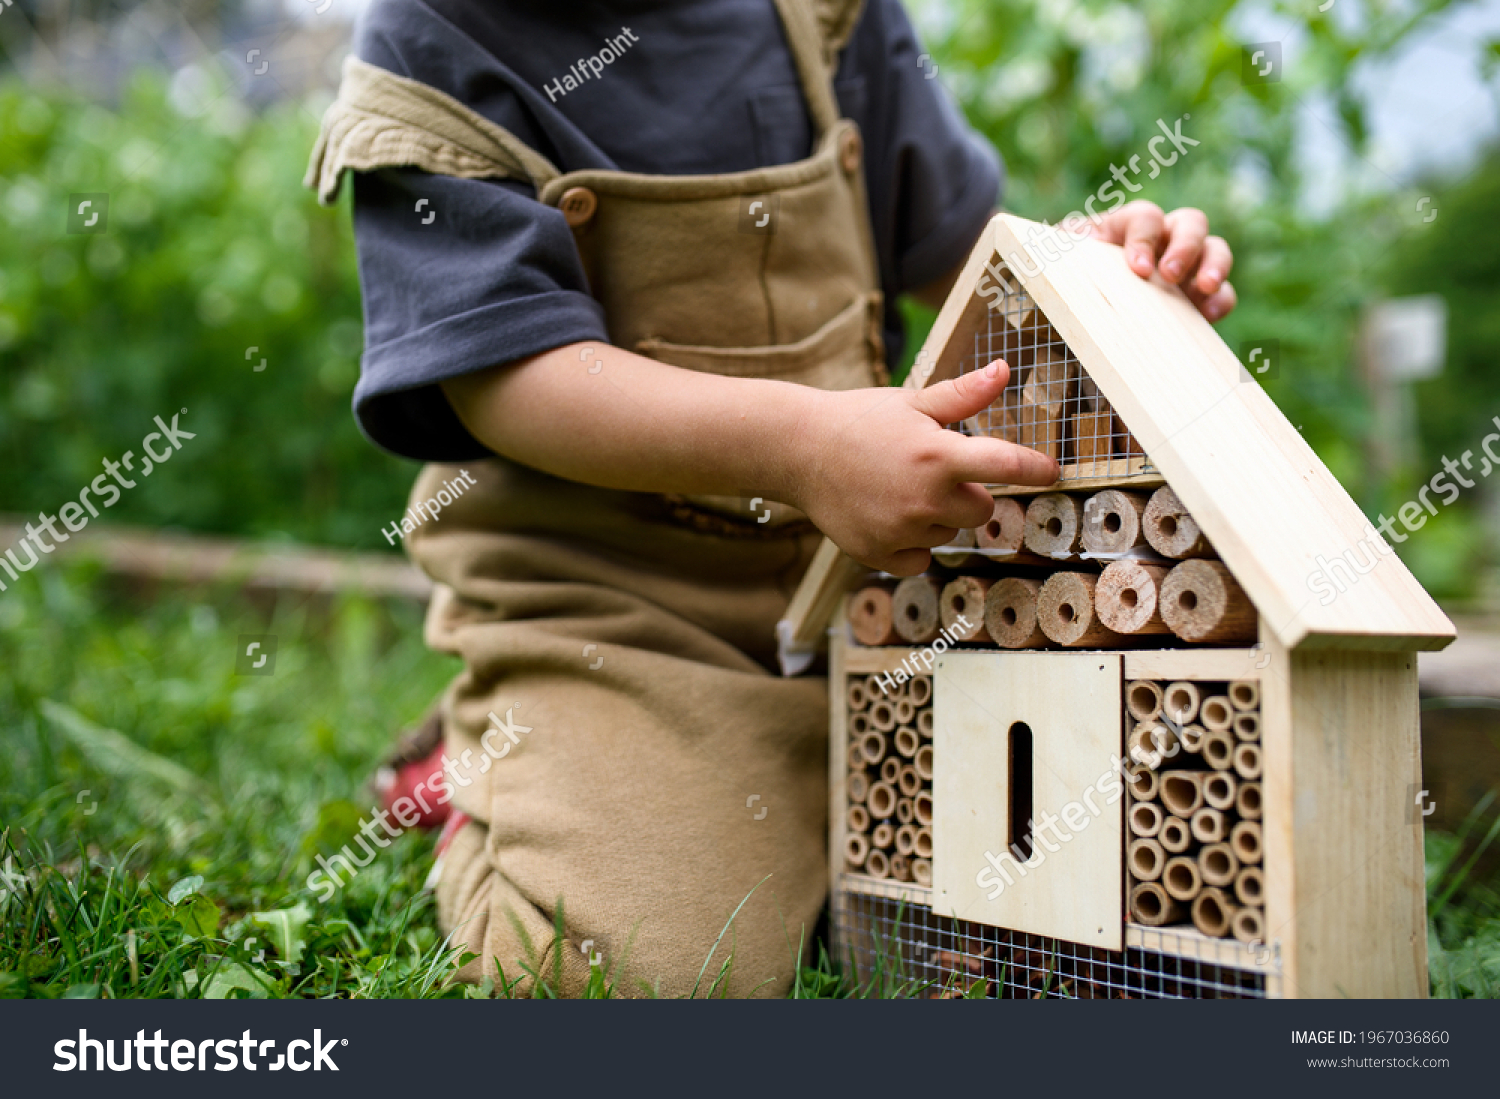 Obscured small child playing with bug and insect hotel in garden, sustainable lifestyle. #1967036860